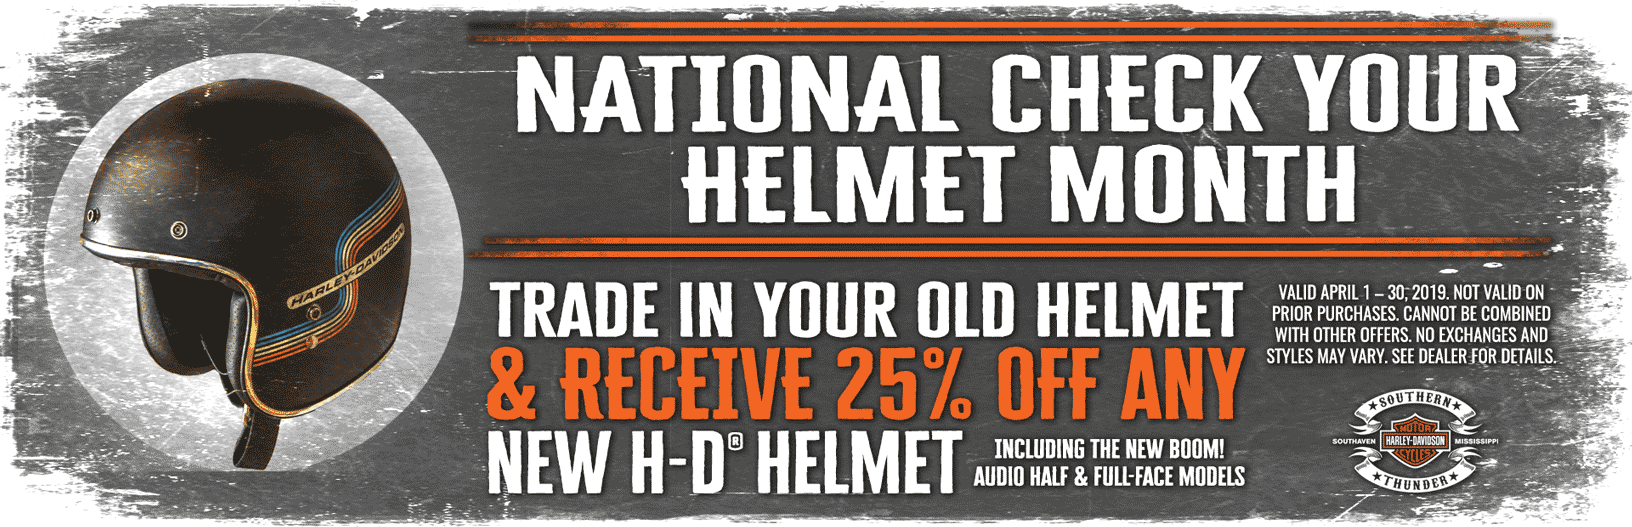 National Check Your Helmet Month